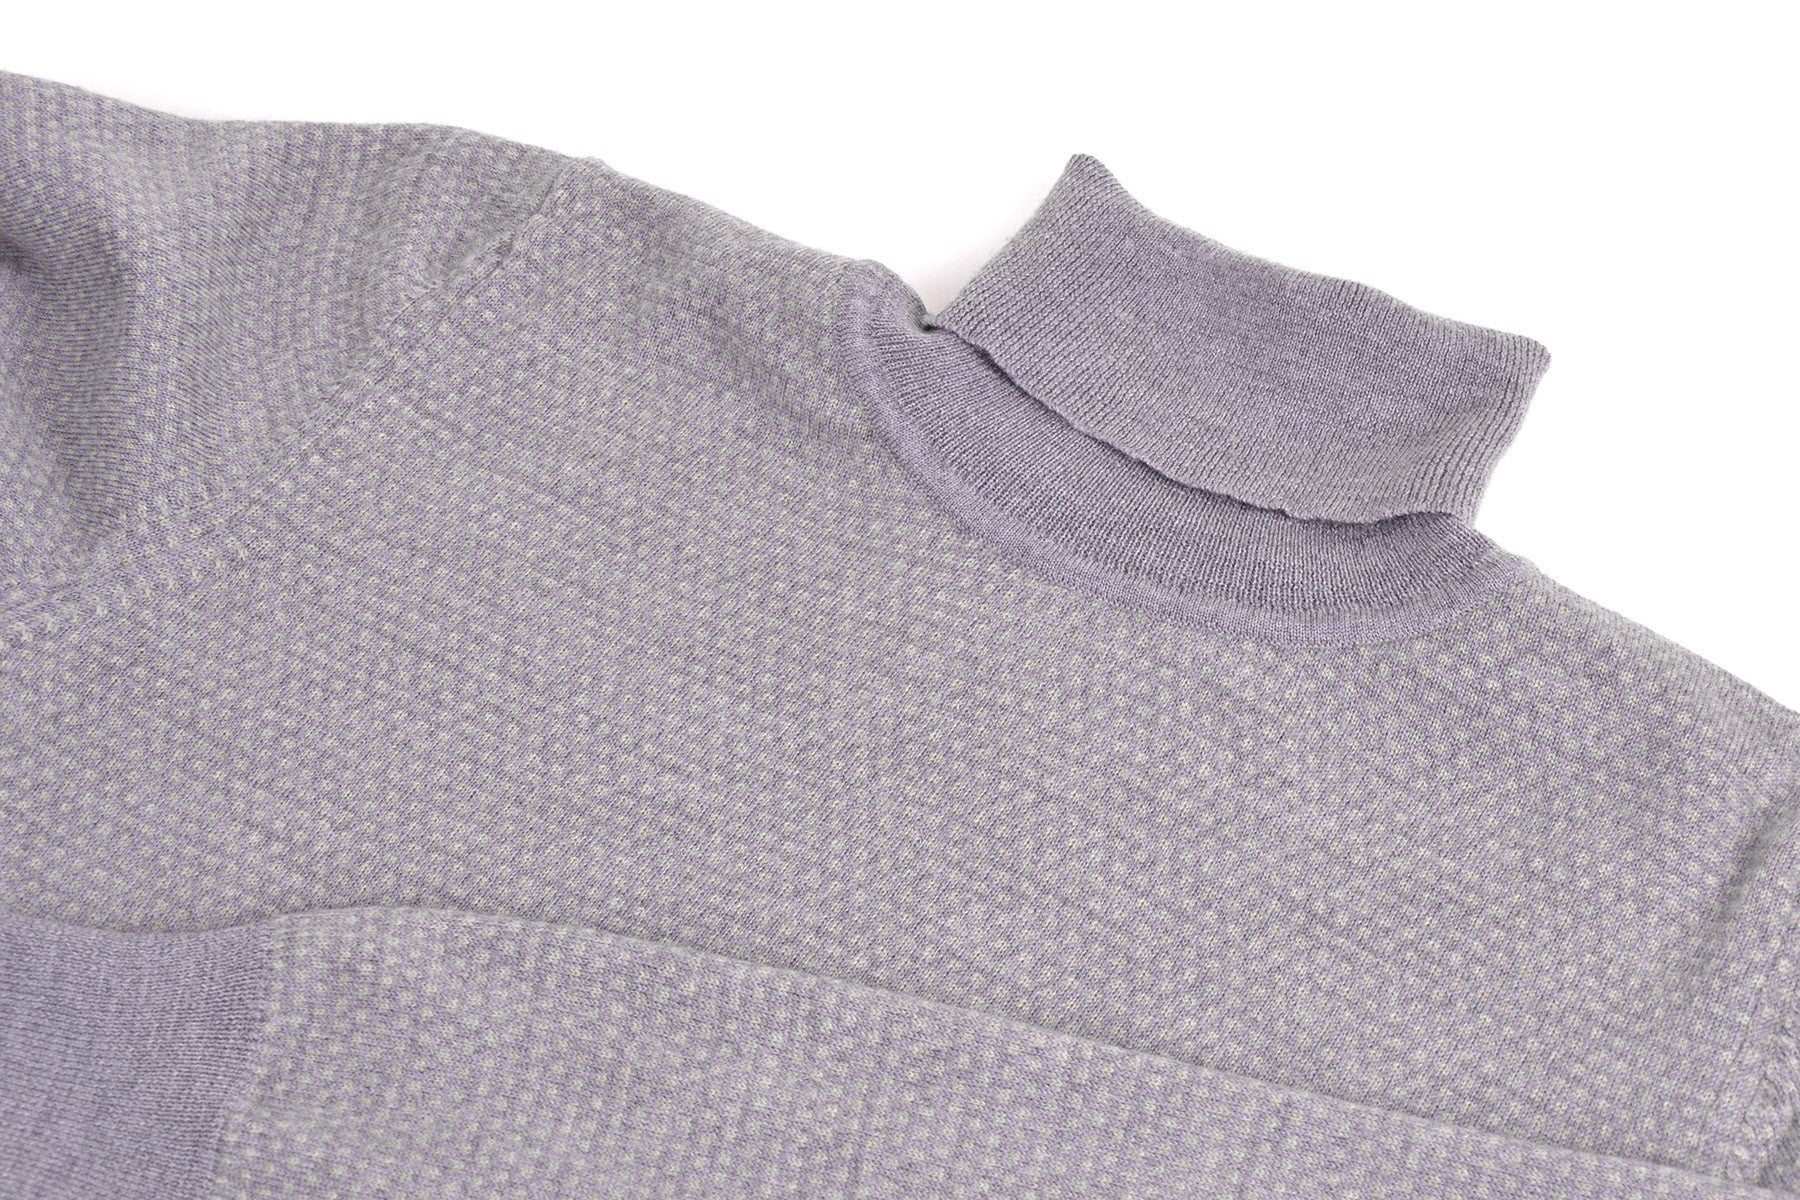 2008 A/W MERINO WOOL TWO-TONE TURTLENECK